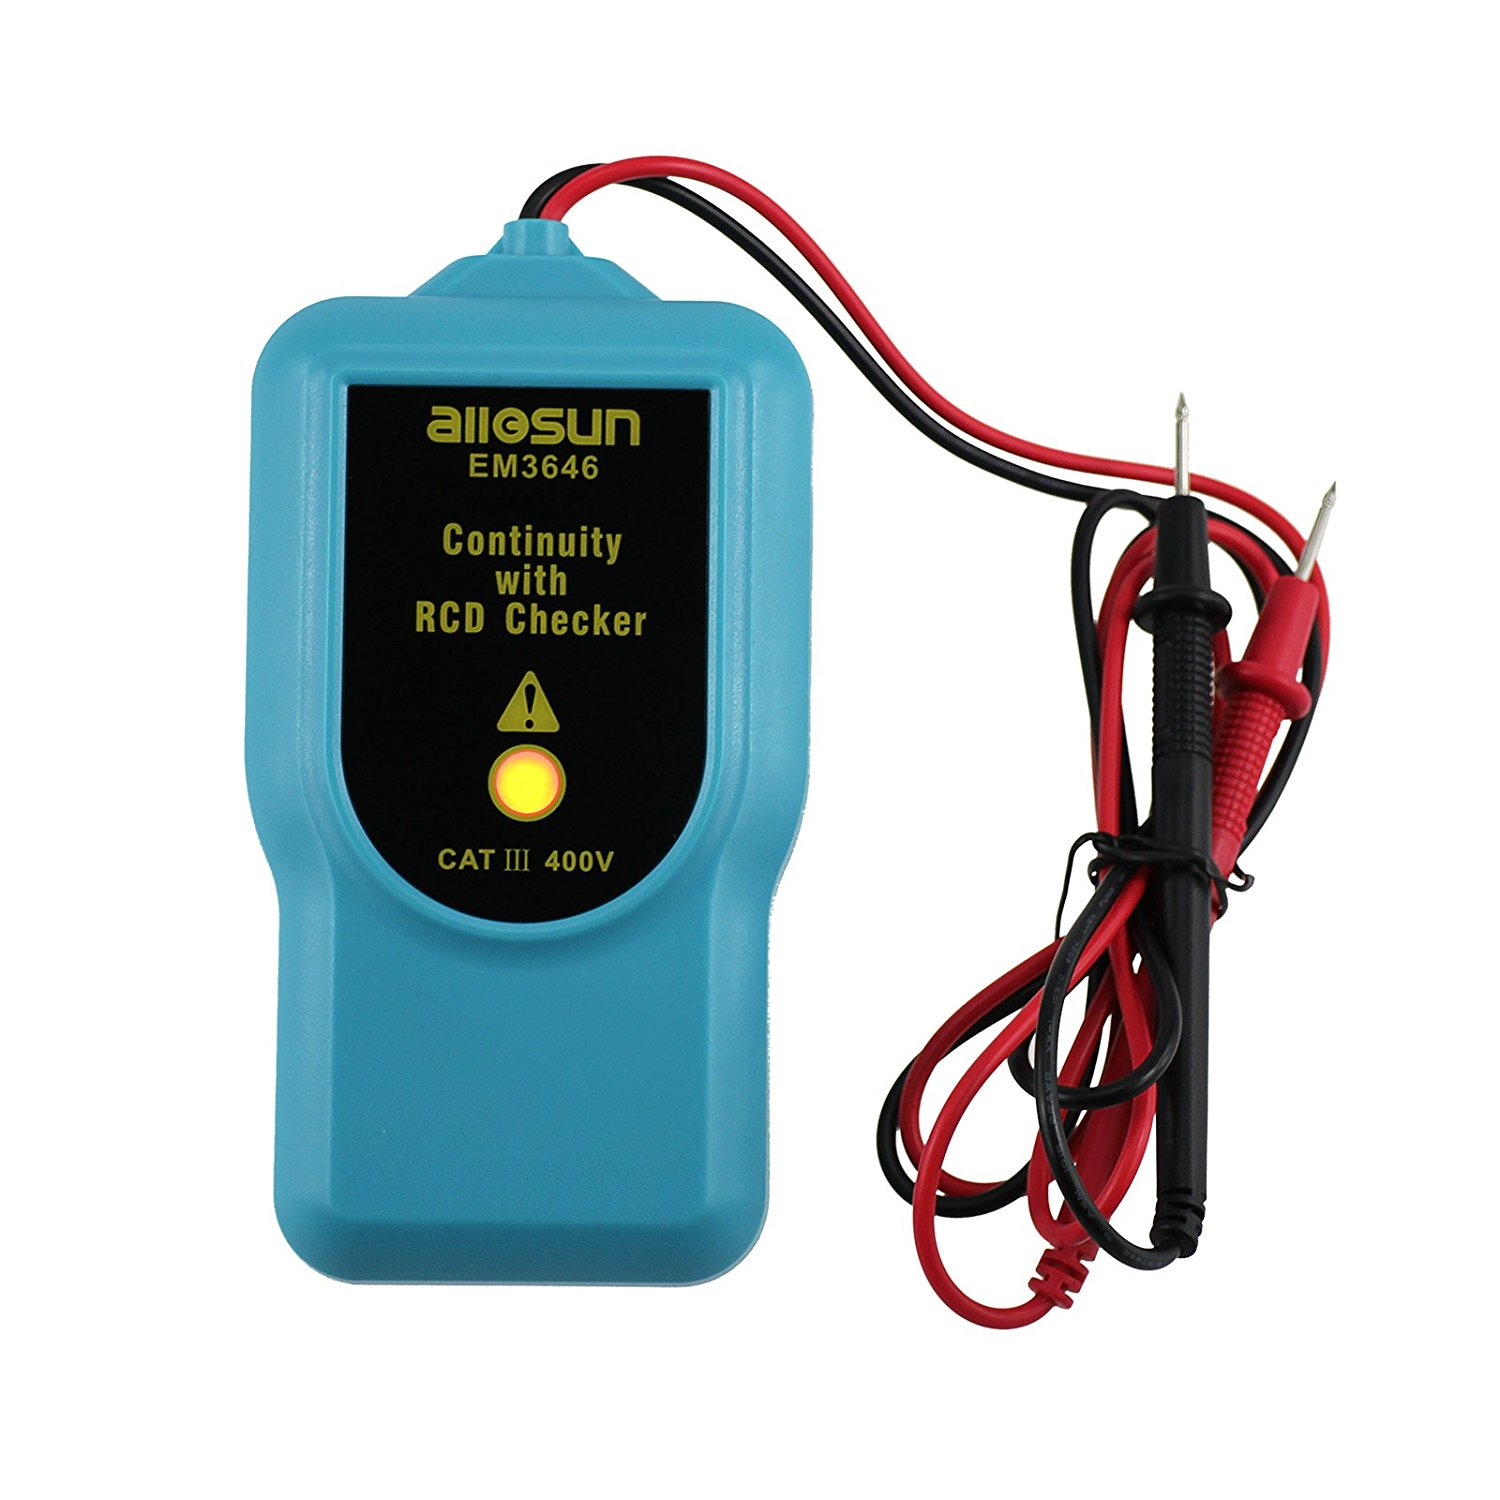 Cheap Rcd Tester, find Rcd Tester deals on line at Alibaba.com